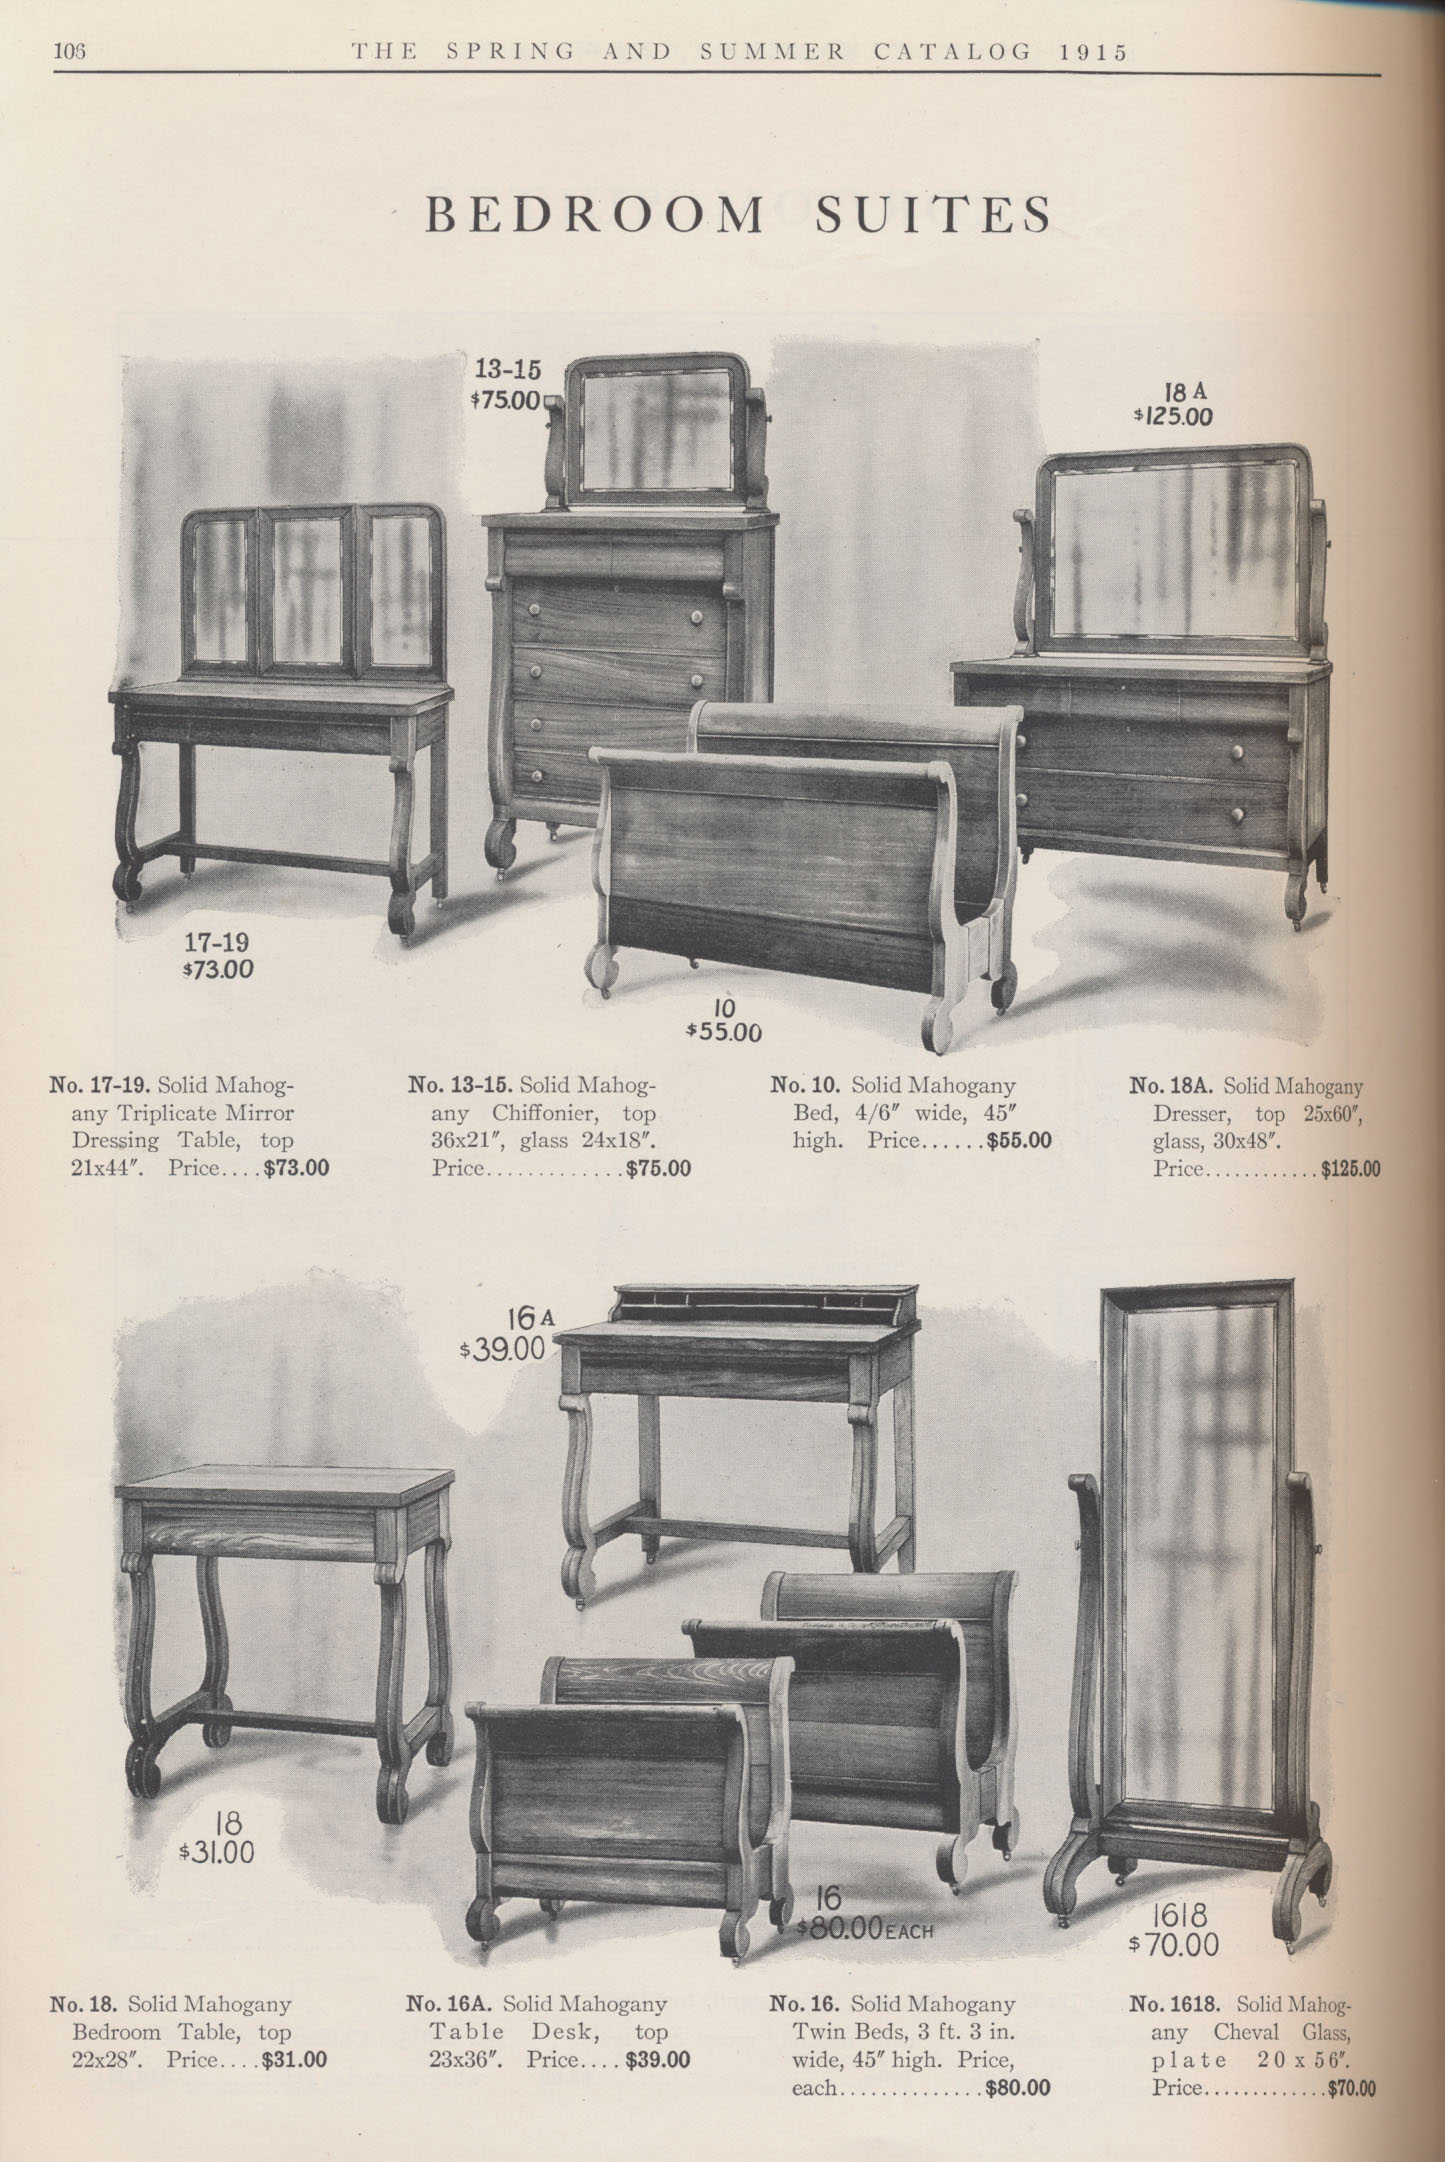 Furniture for Bedroom Suites including Dressing Table, Chiffonier, Bed, Dresser, Bedroom Table, Table Desk, Twin Beds, and Cheval Glass